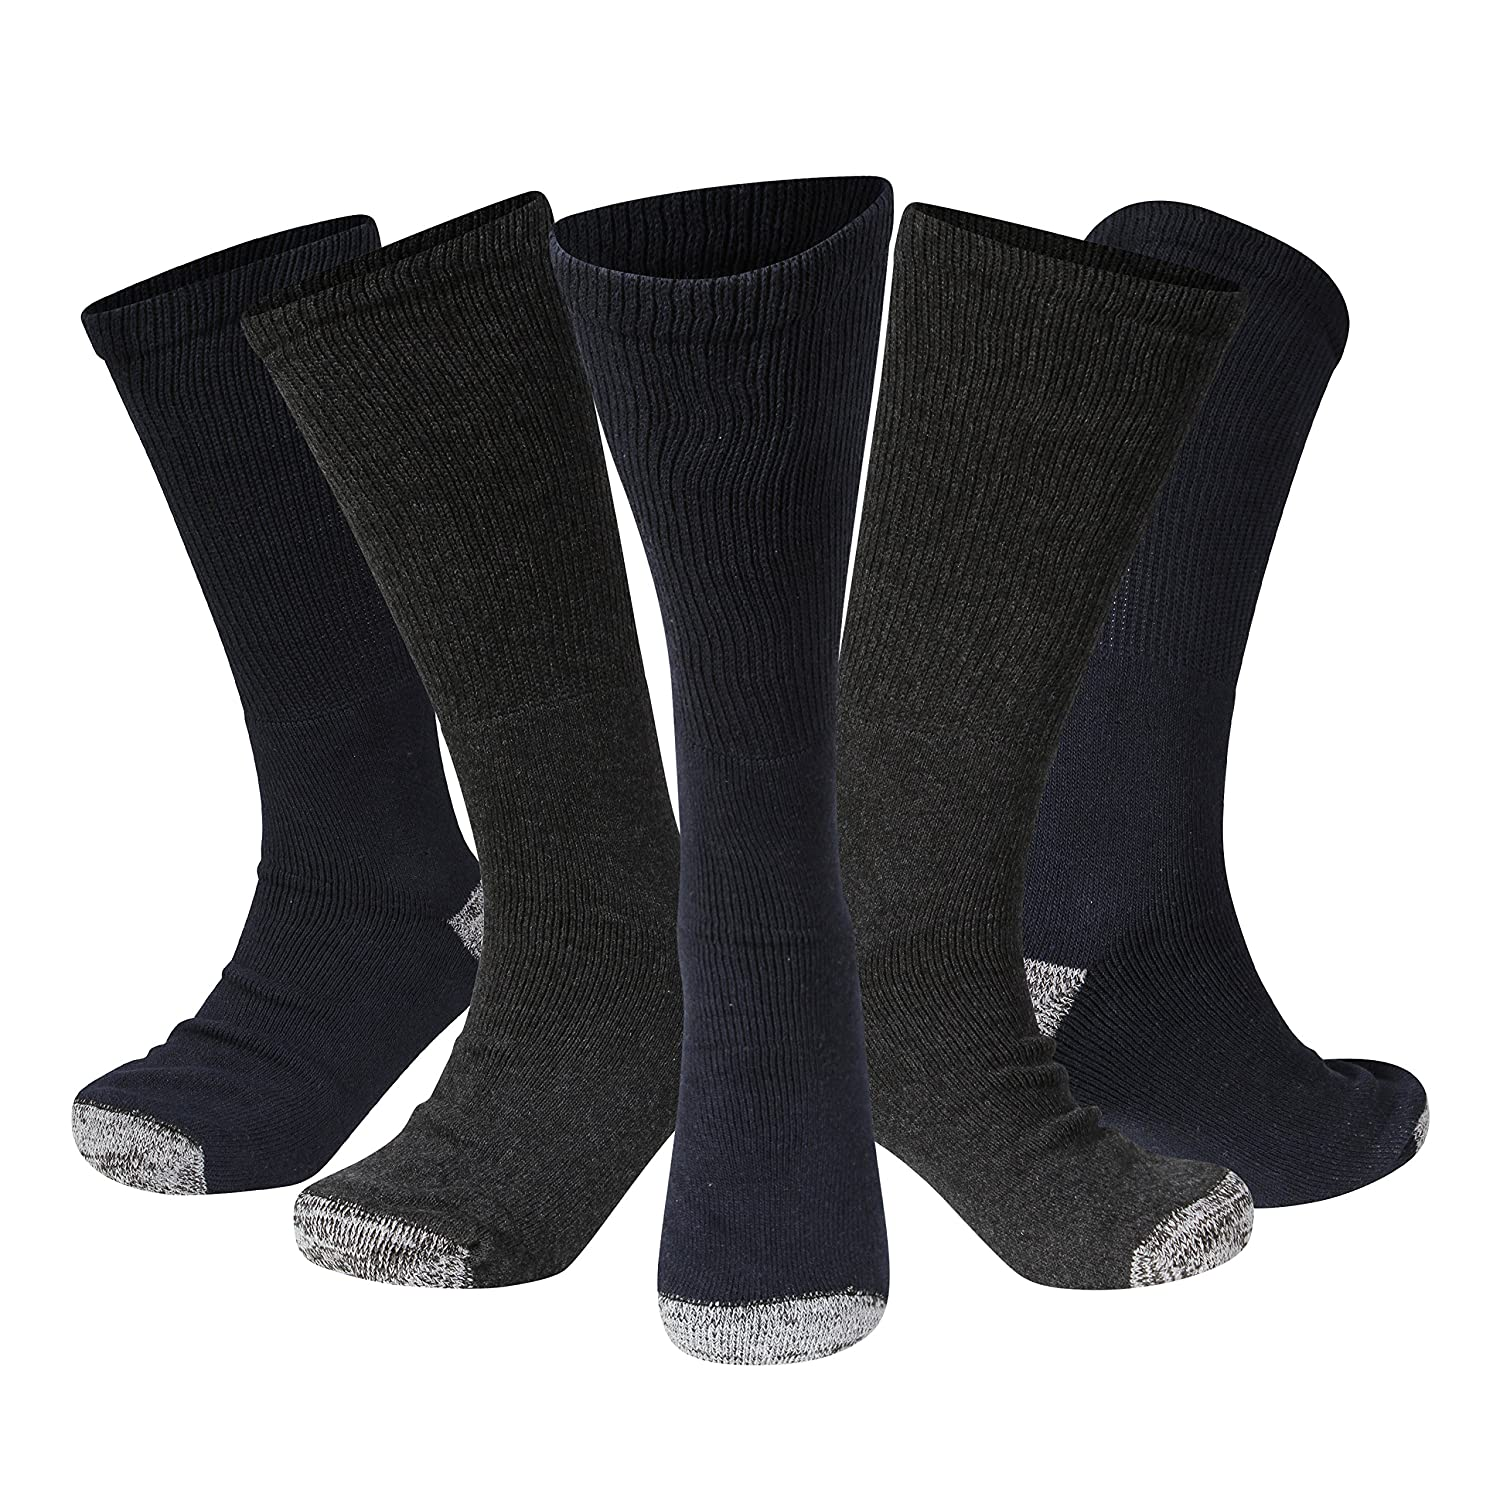 3 pack Kensington LONG MEN's SAFETY BOOT WORK SOCKS for Steel toe cap boots GENUINELY TOUGH THICK HEAVY DUTY QUALITY Hard wearing dry hot & cold weather cotton cushioned soled, motorcycle base layer Durable Versatile Reliable Outdoors